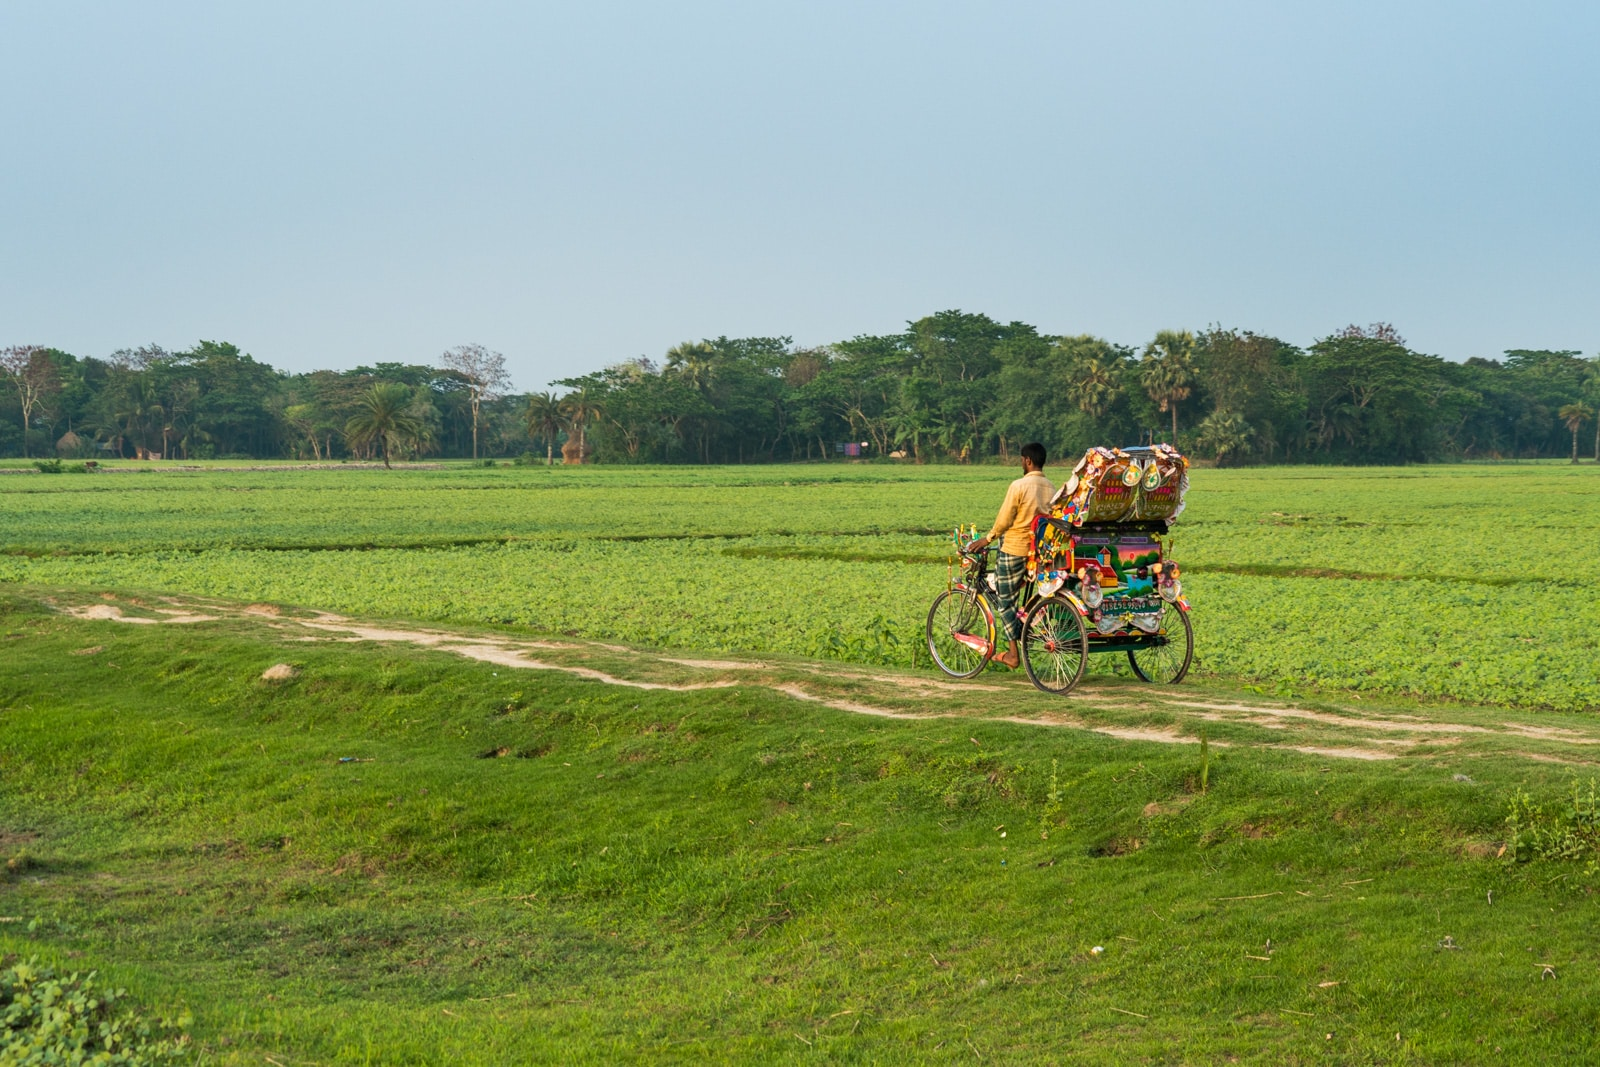 Cycle rickshaw driver on Monpura island, Bangladesh